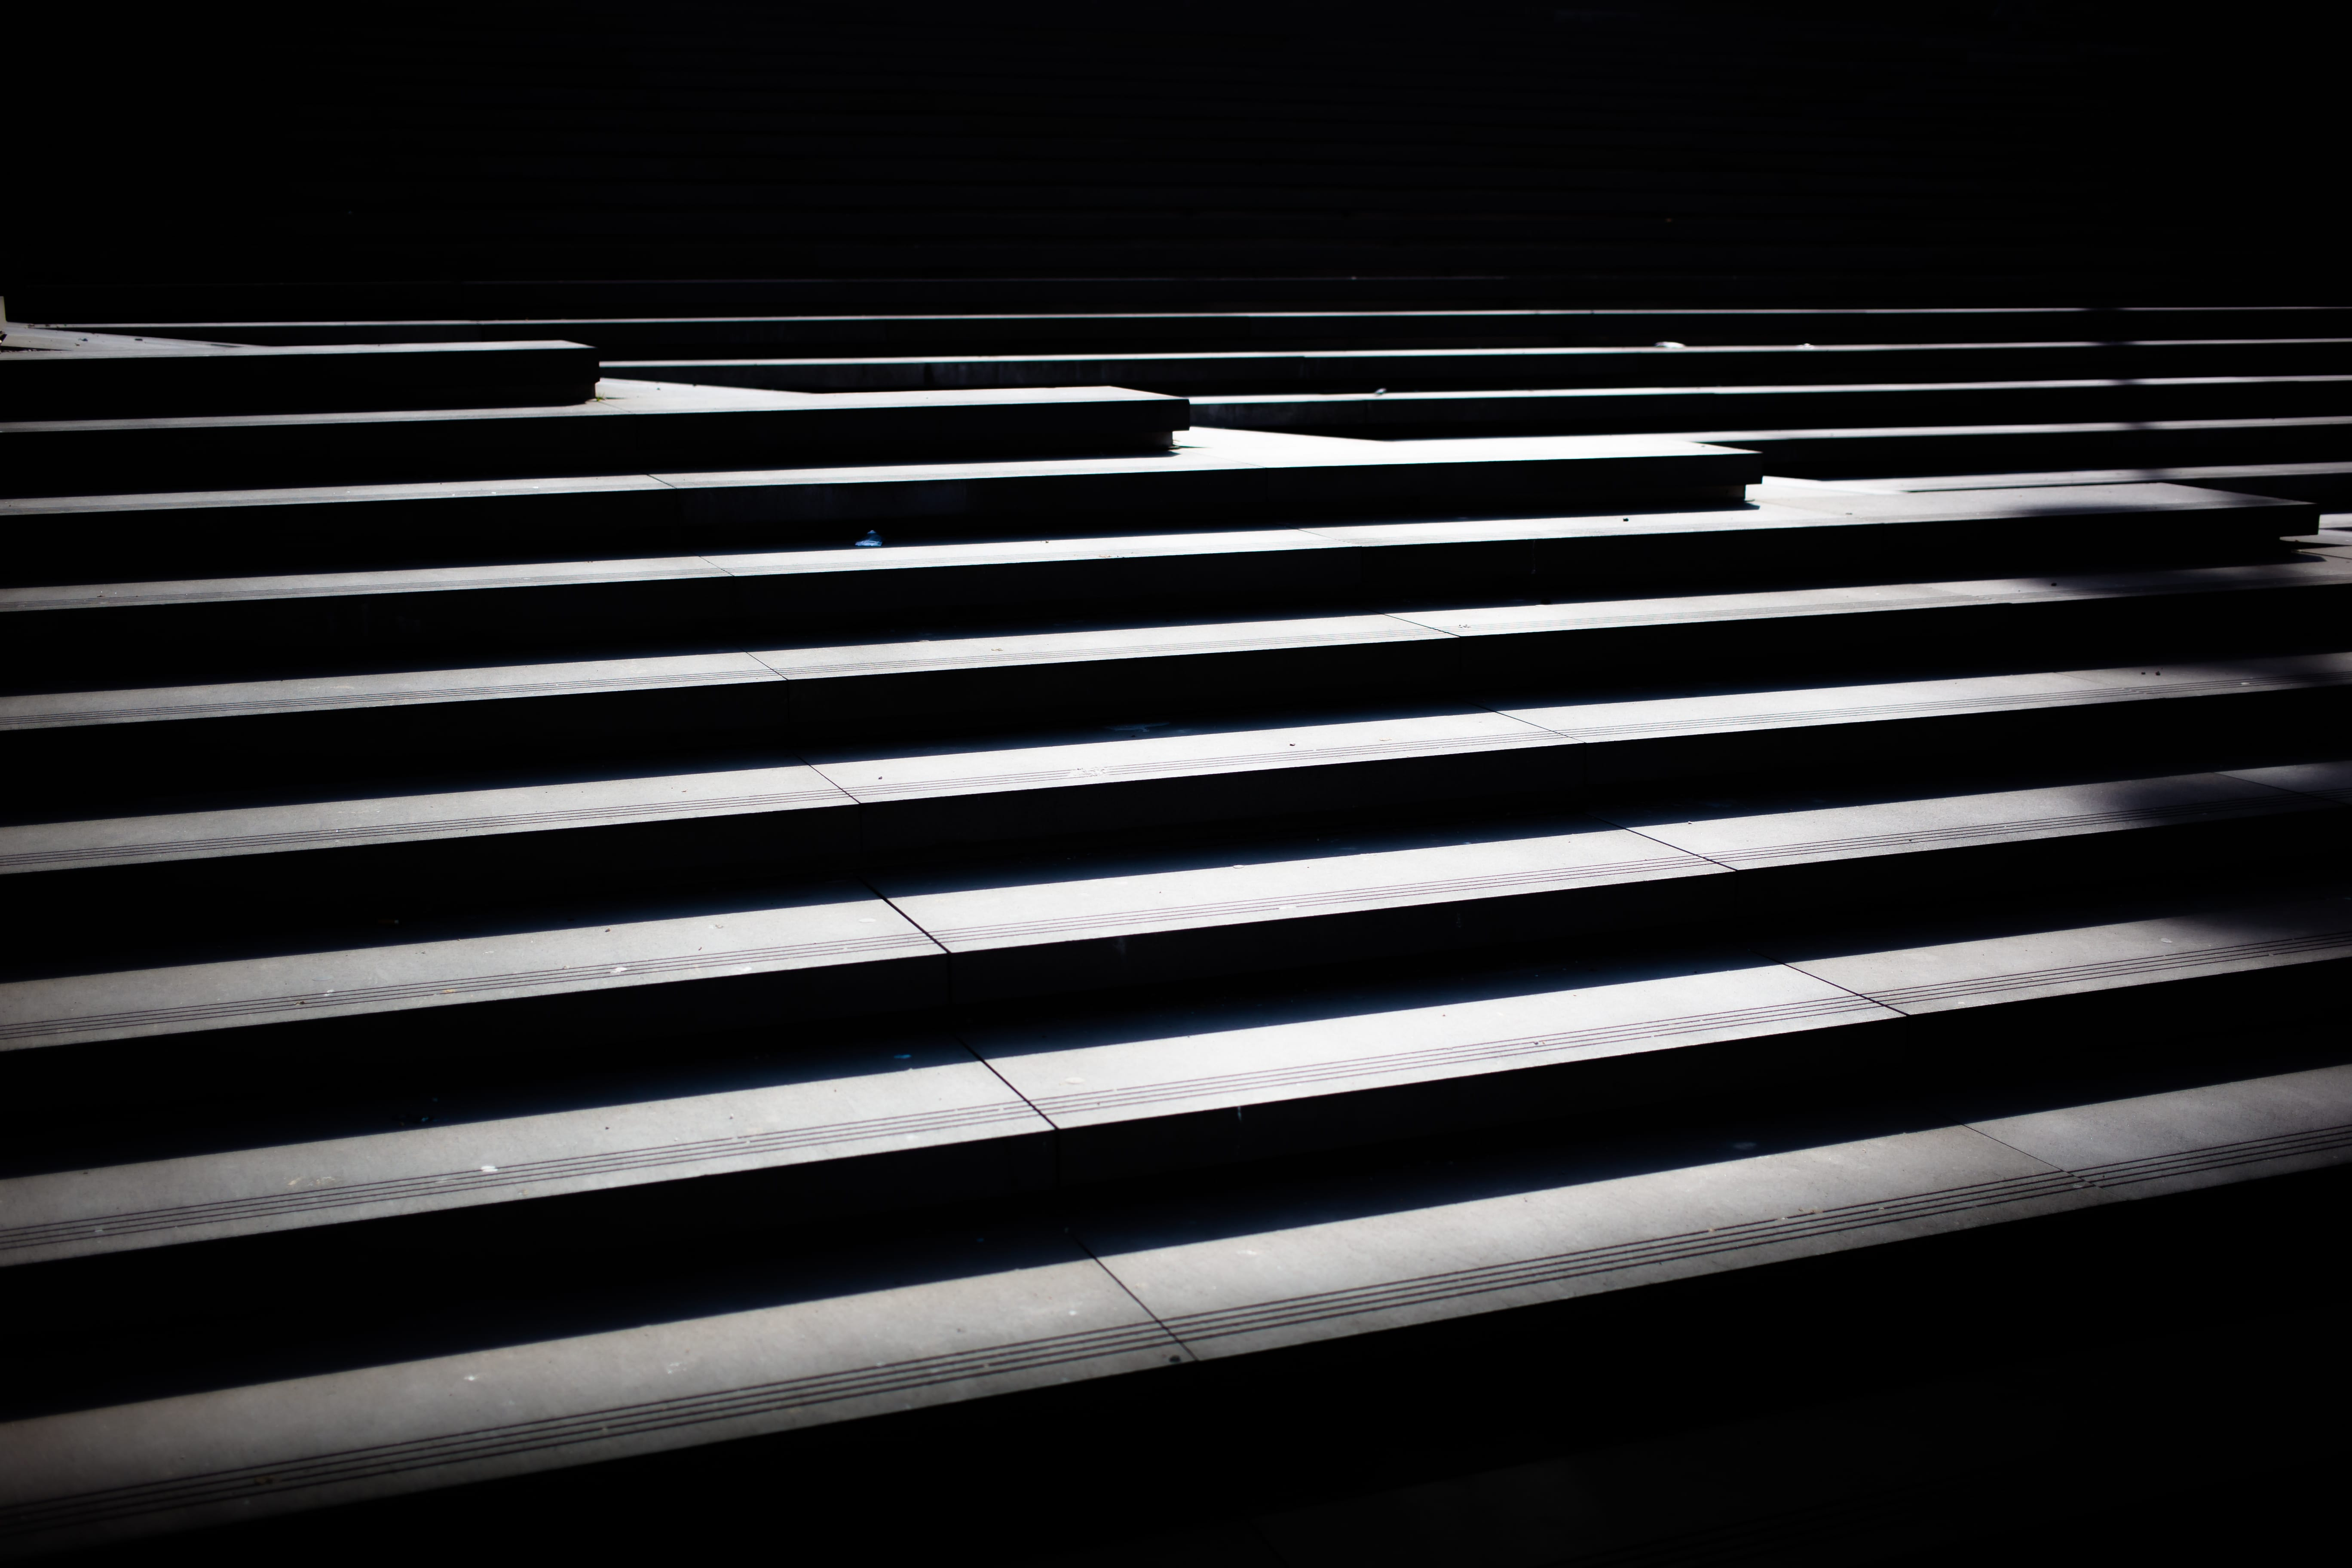 A flight of stairs shrouded in shadow